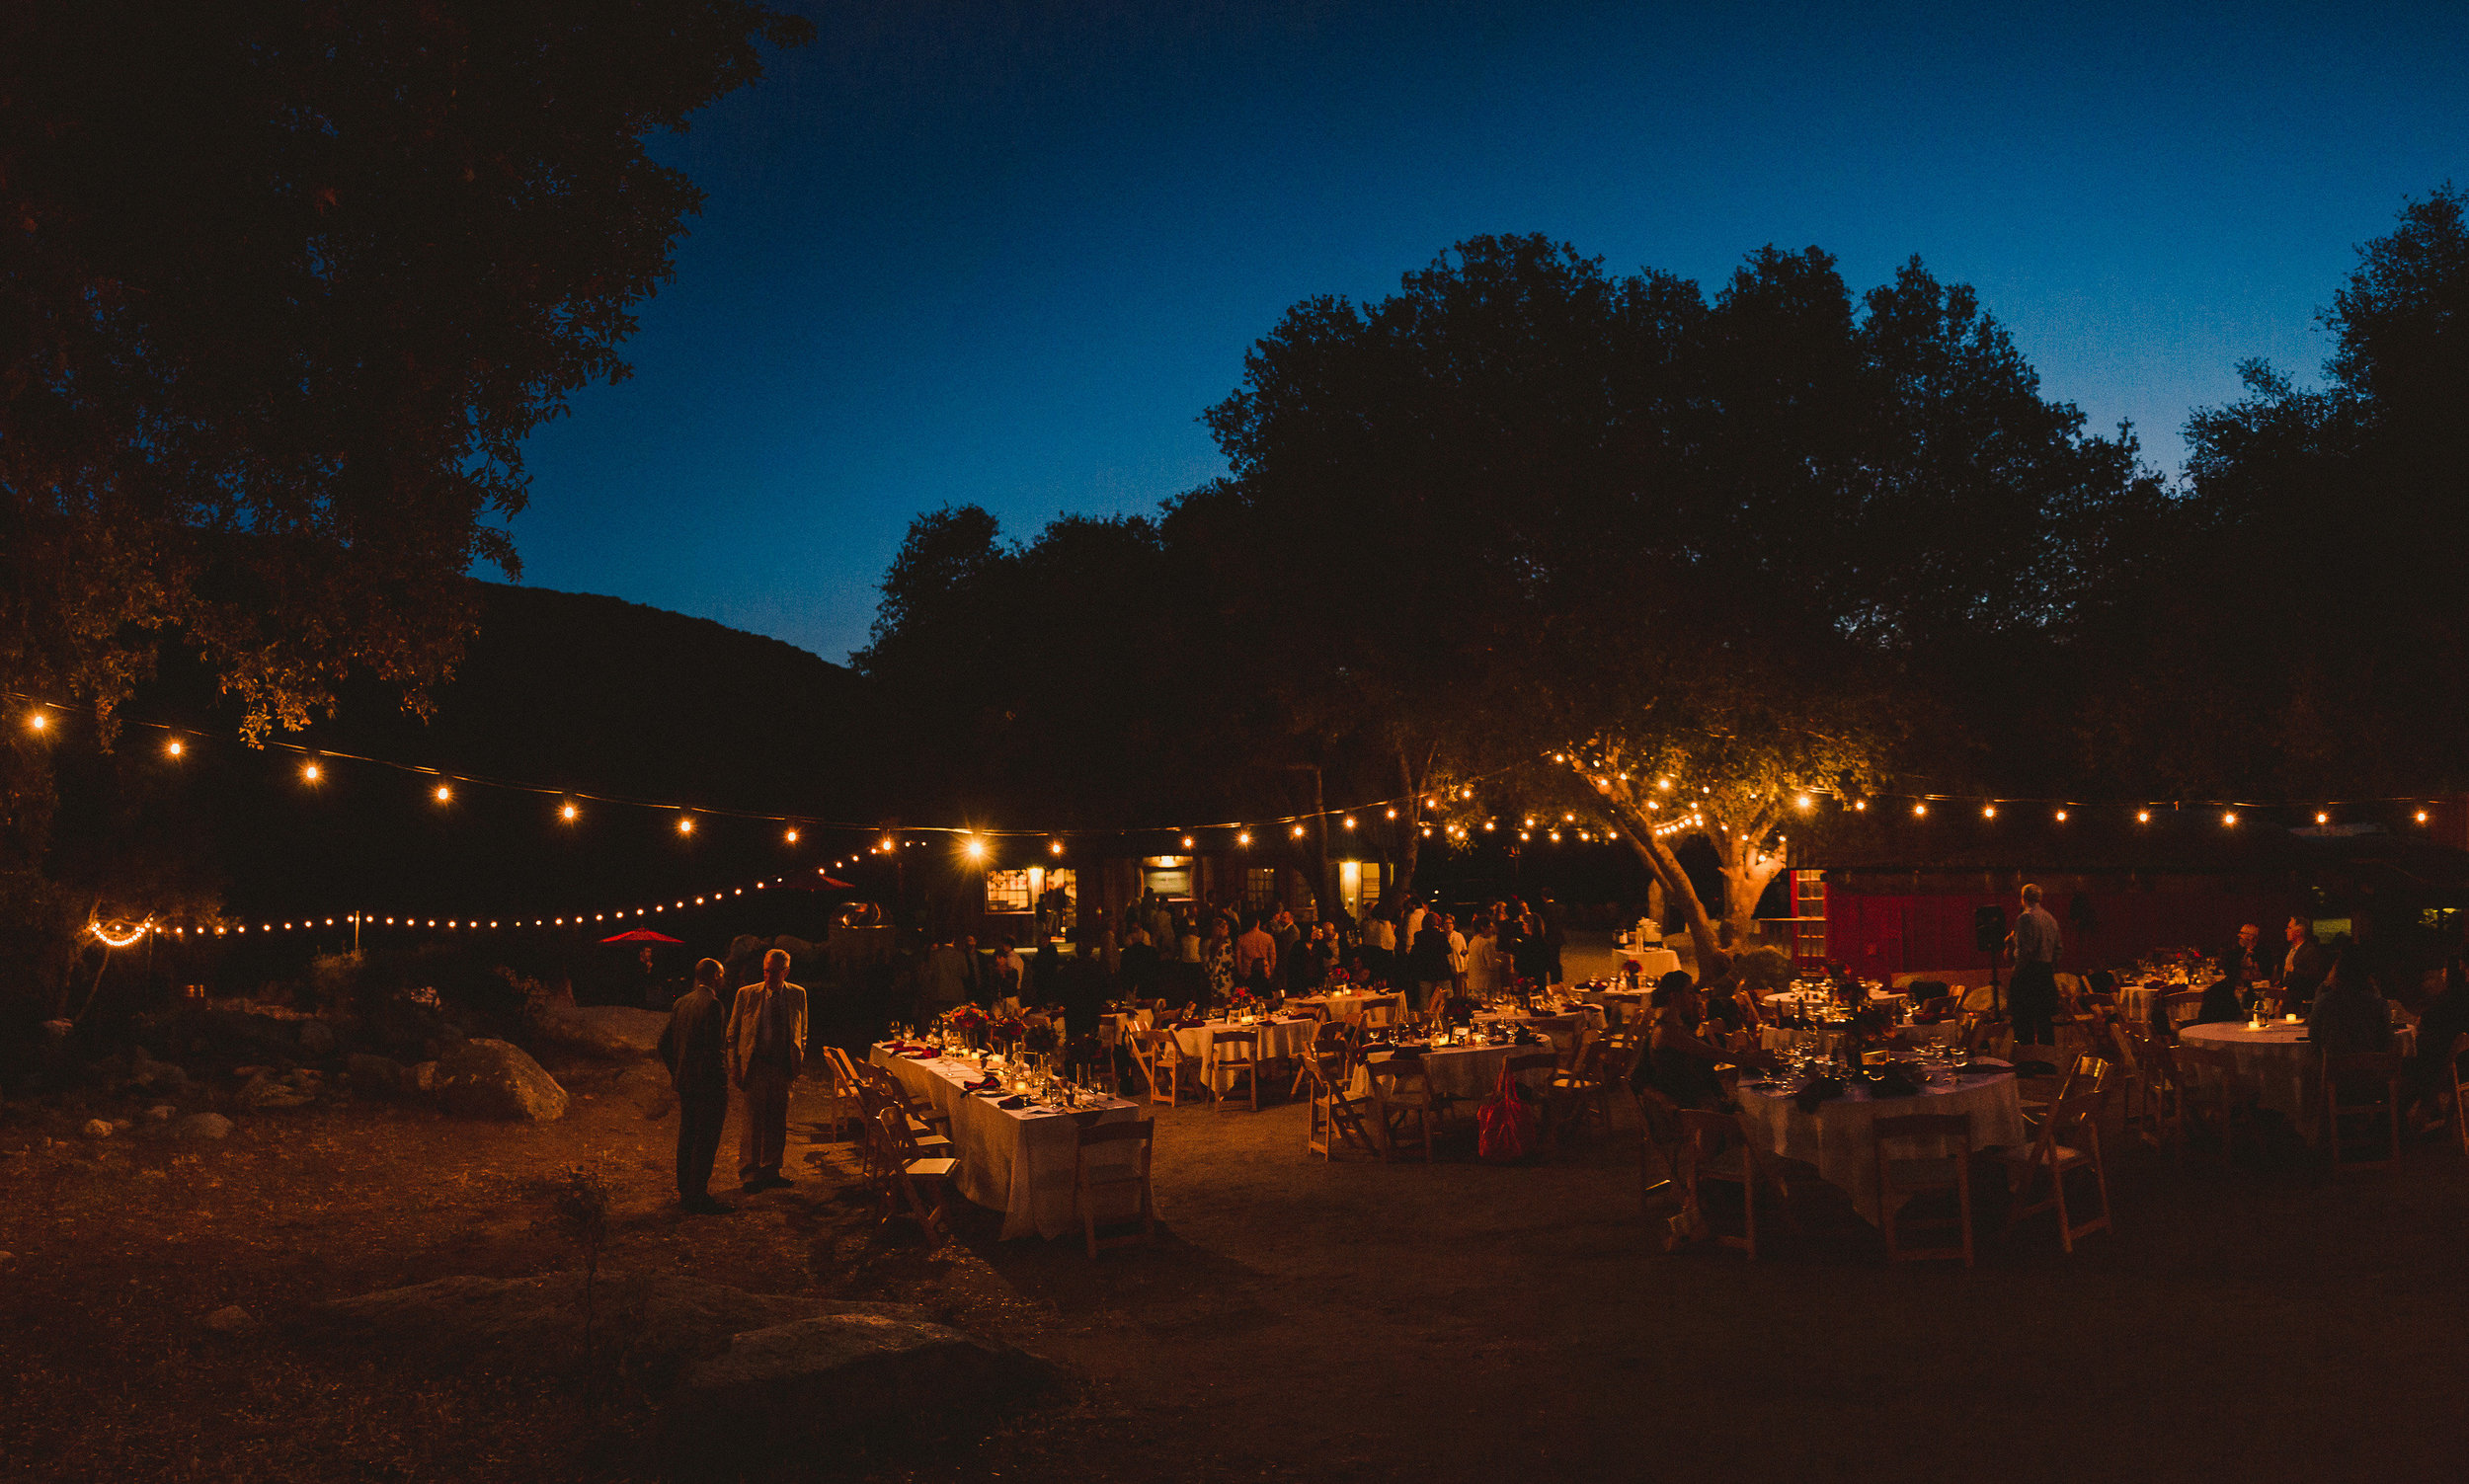 Redwood-Ranch-Three-Rivers-Wedding-Venue-13.jpg